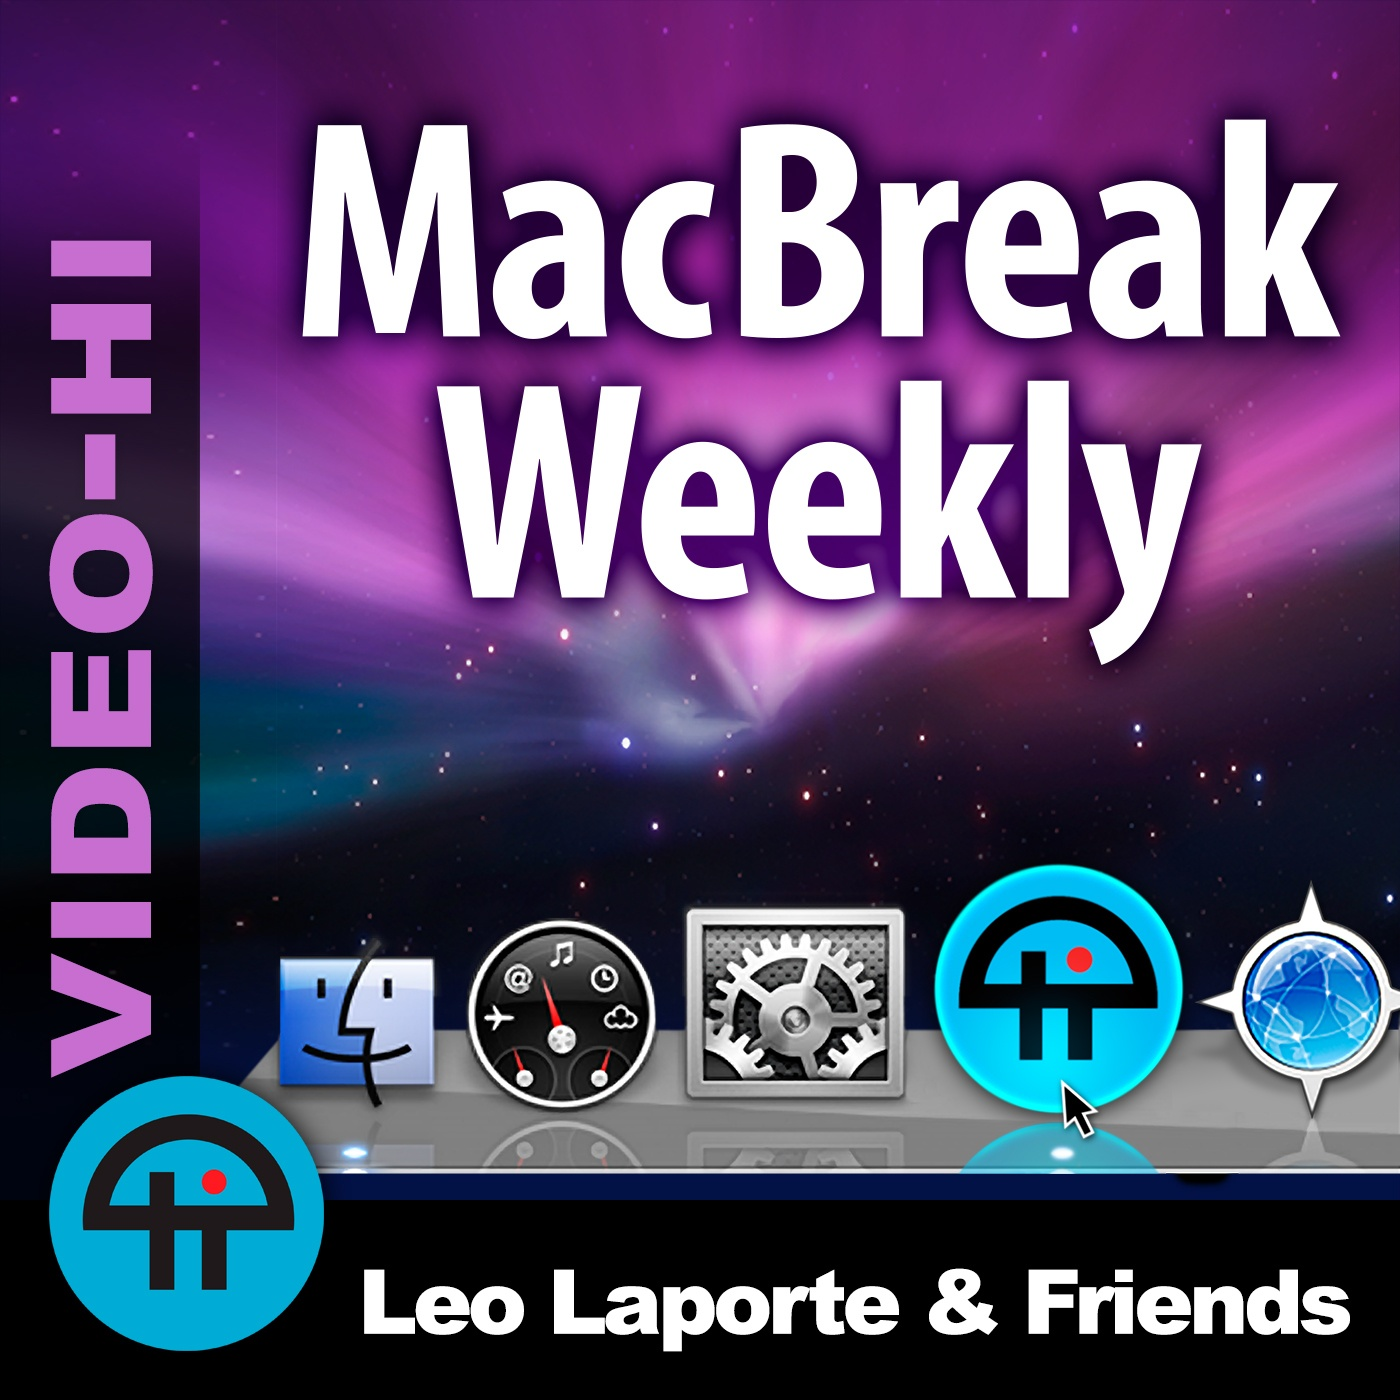 MacBreak Weekly (Video-HI)